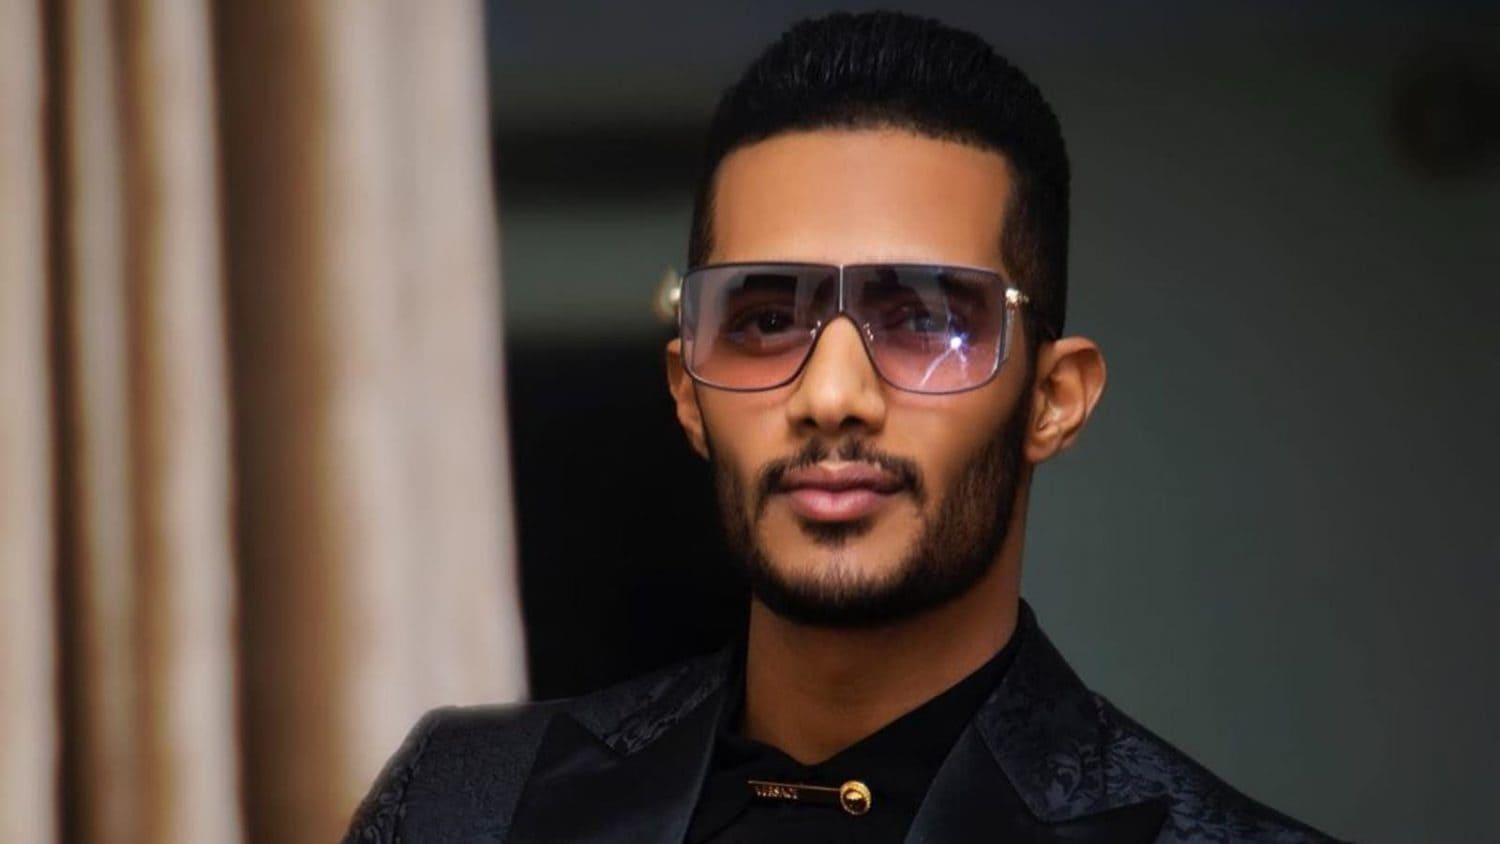 Mohamed Ramadan (Actor) Wiki, Age, Education, Net Worth & More 3